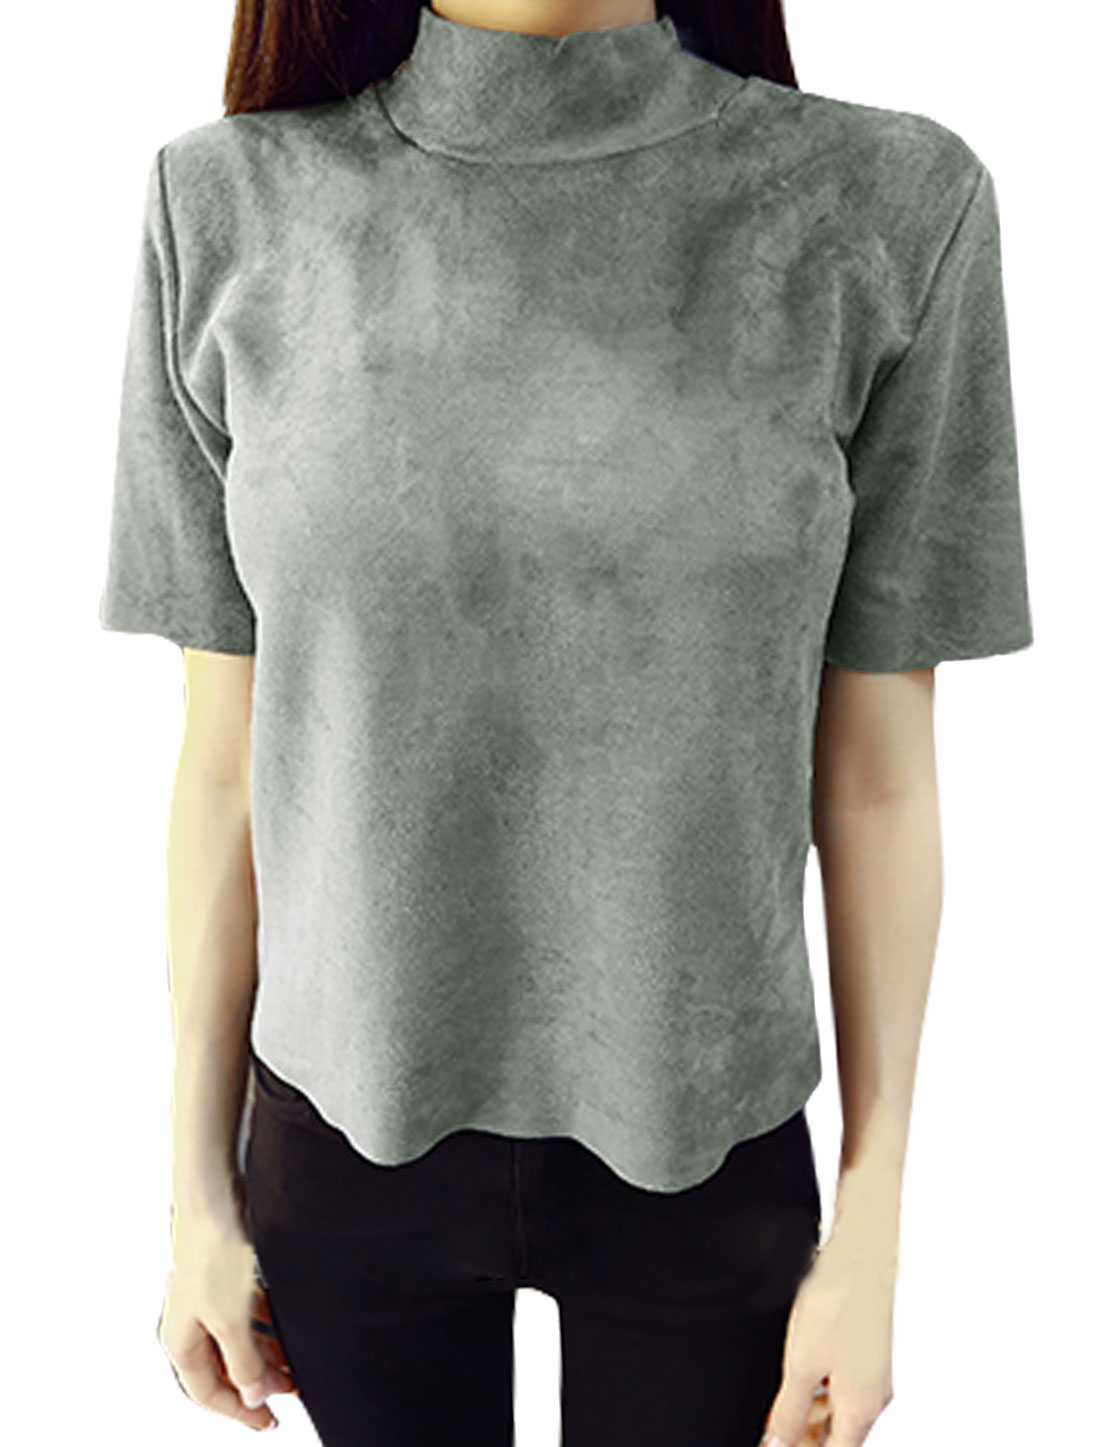 Women Short Sleeves Mock Neck Raw Edge Slim Fit Top Gray XS